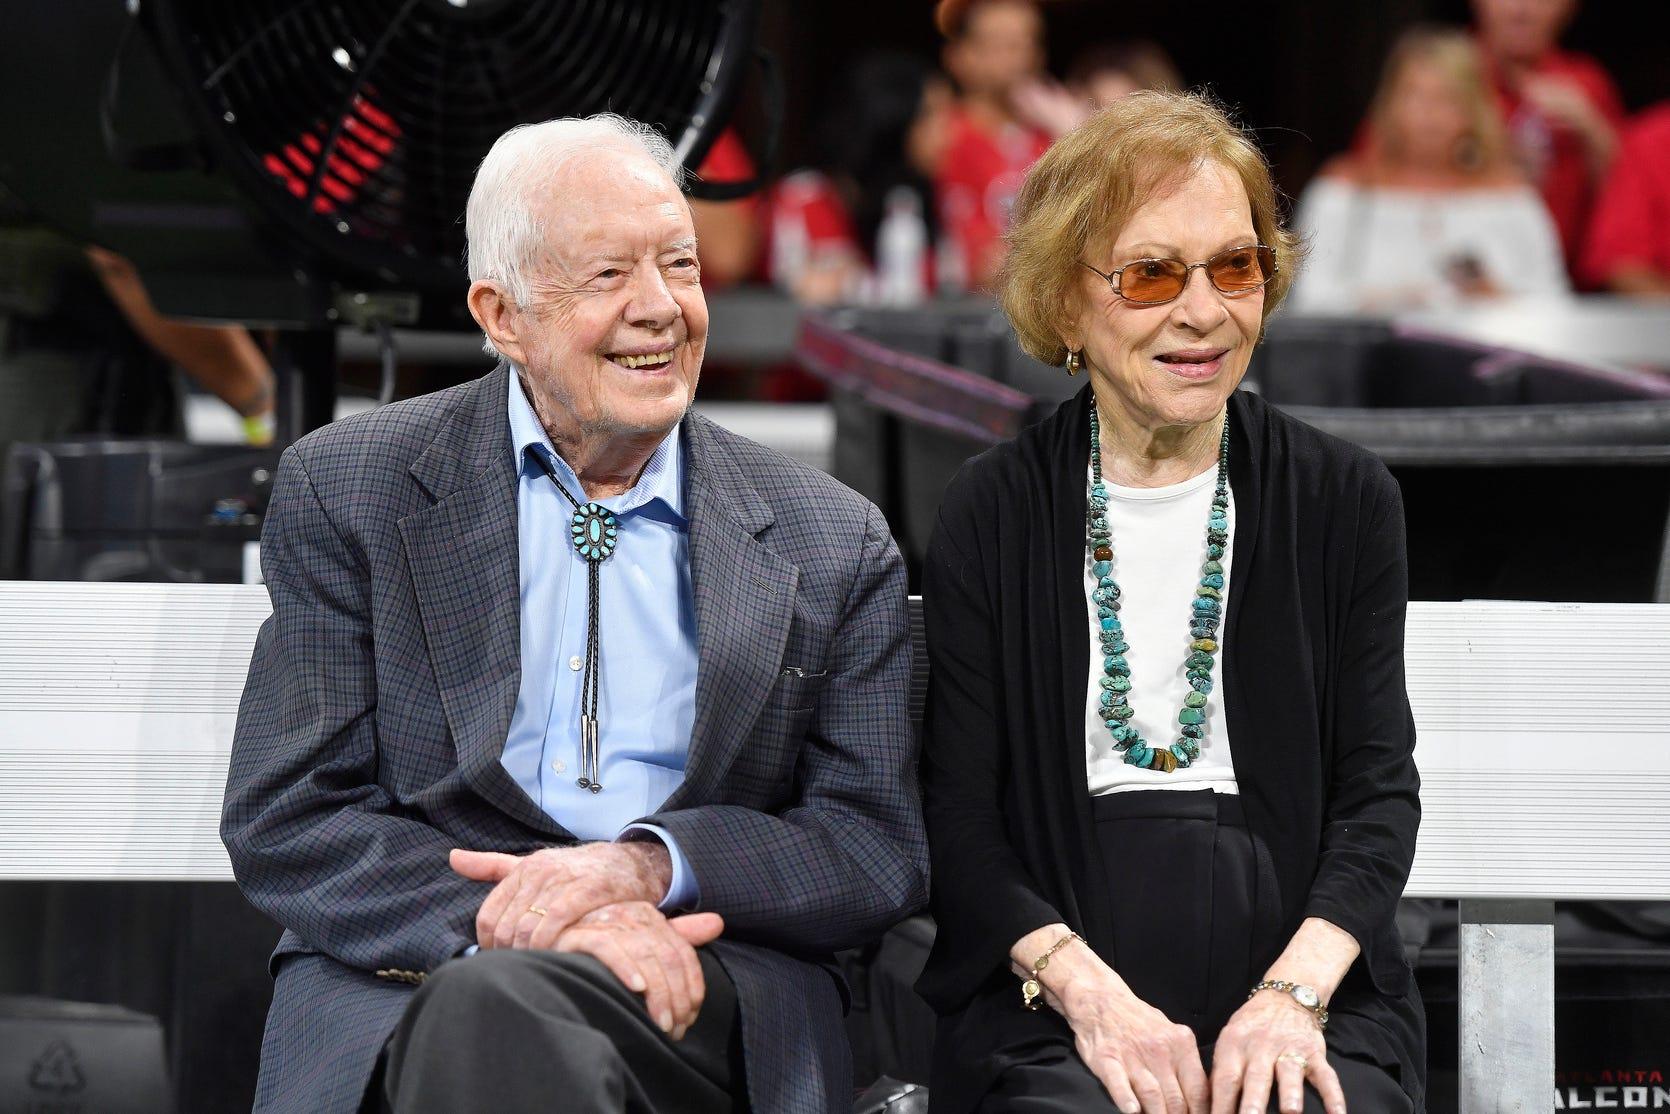 Jimmy and Rosalynn Carter, longest-married presidential couple, celebrate 74th anniversary